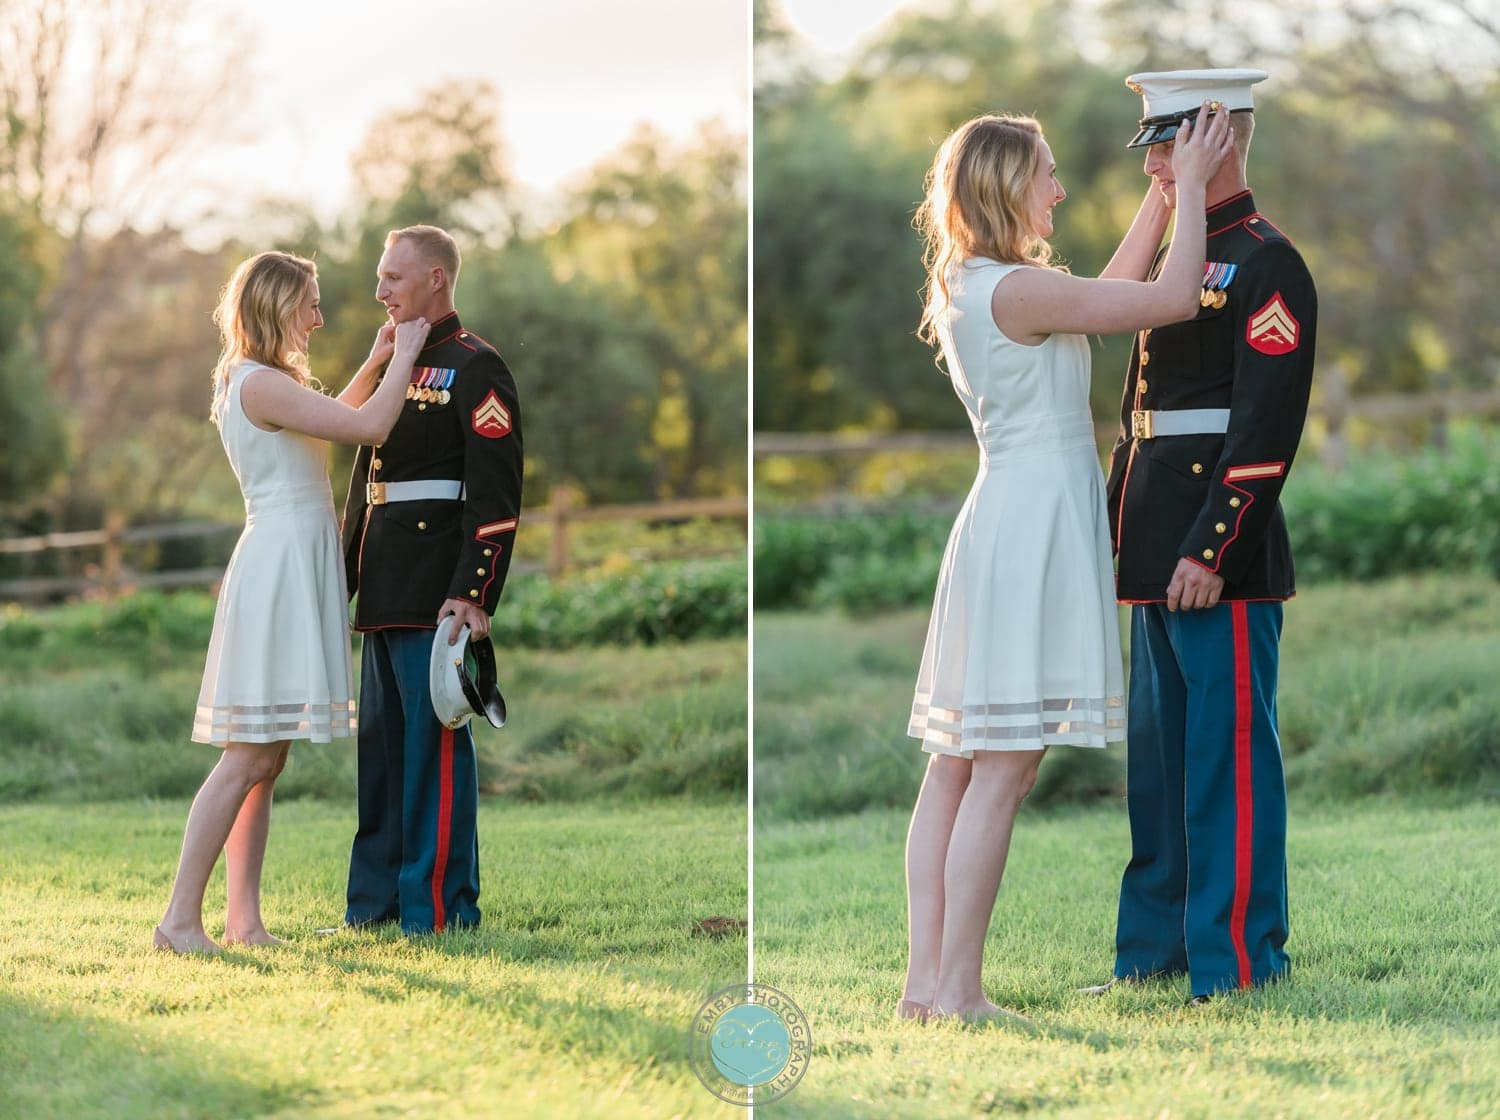 Marine and his bride to be in dress uniform for their engagement photography session.